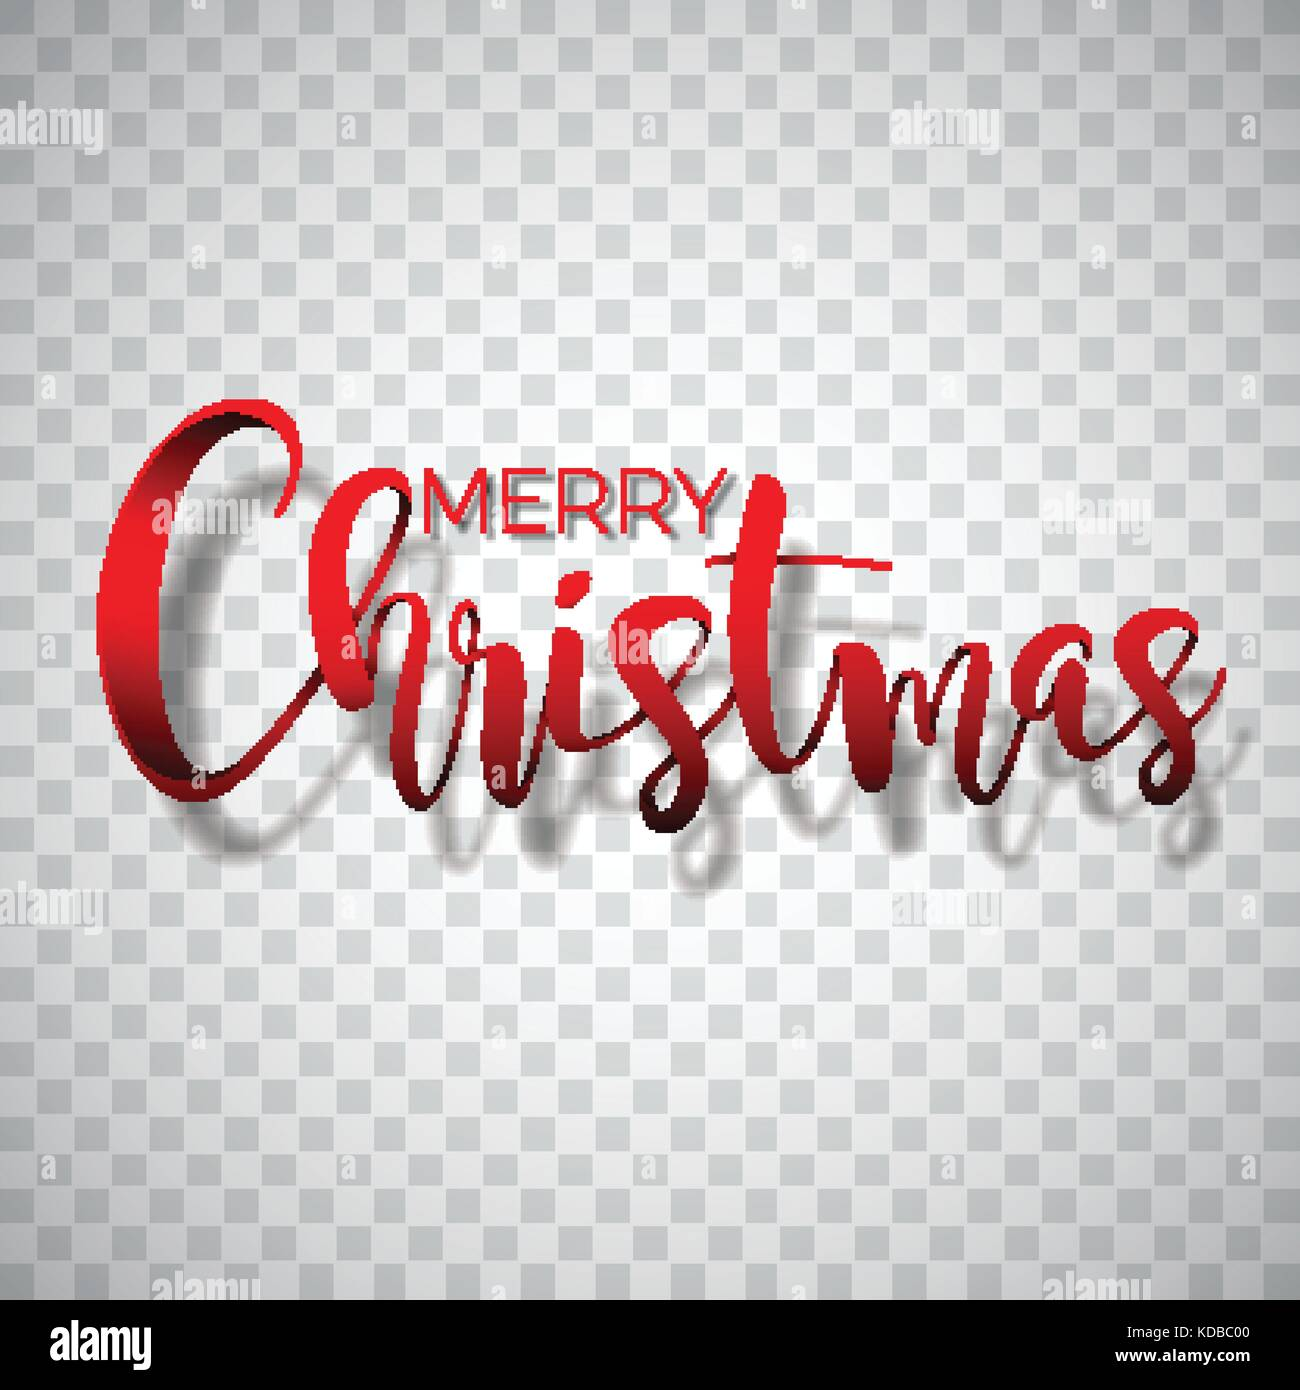 Merry Christmas Typography Illustration On A Transparent Background